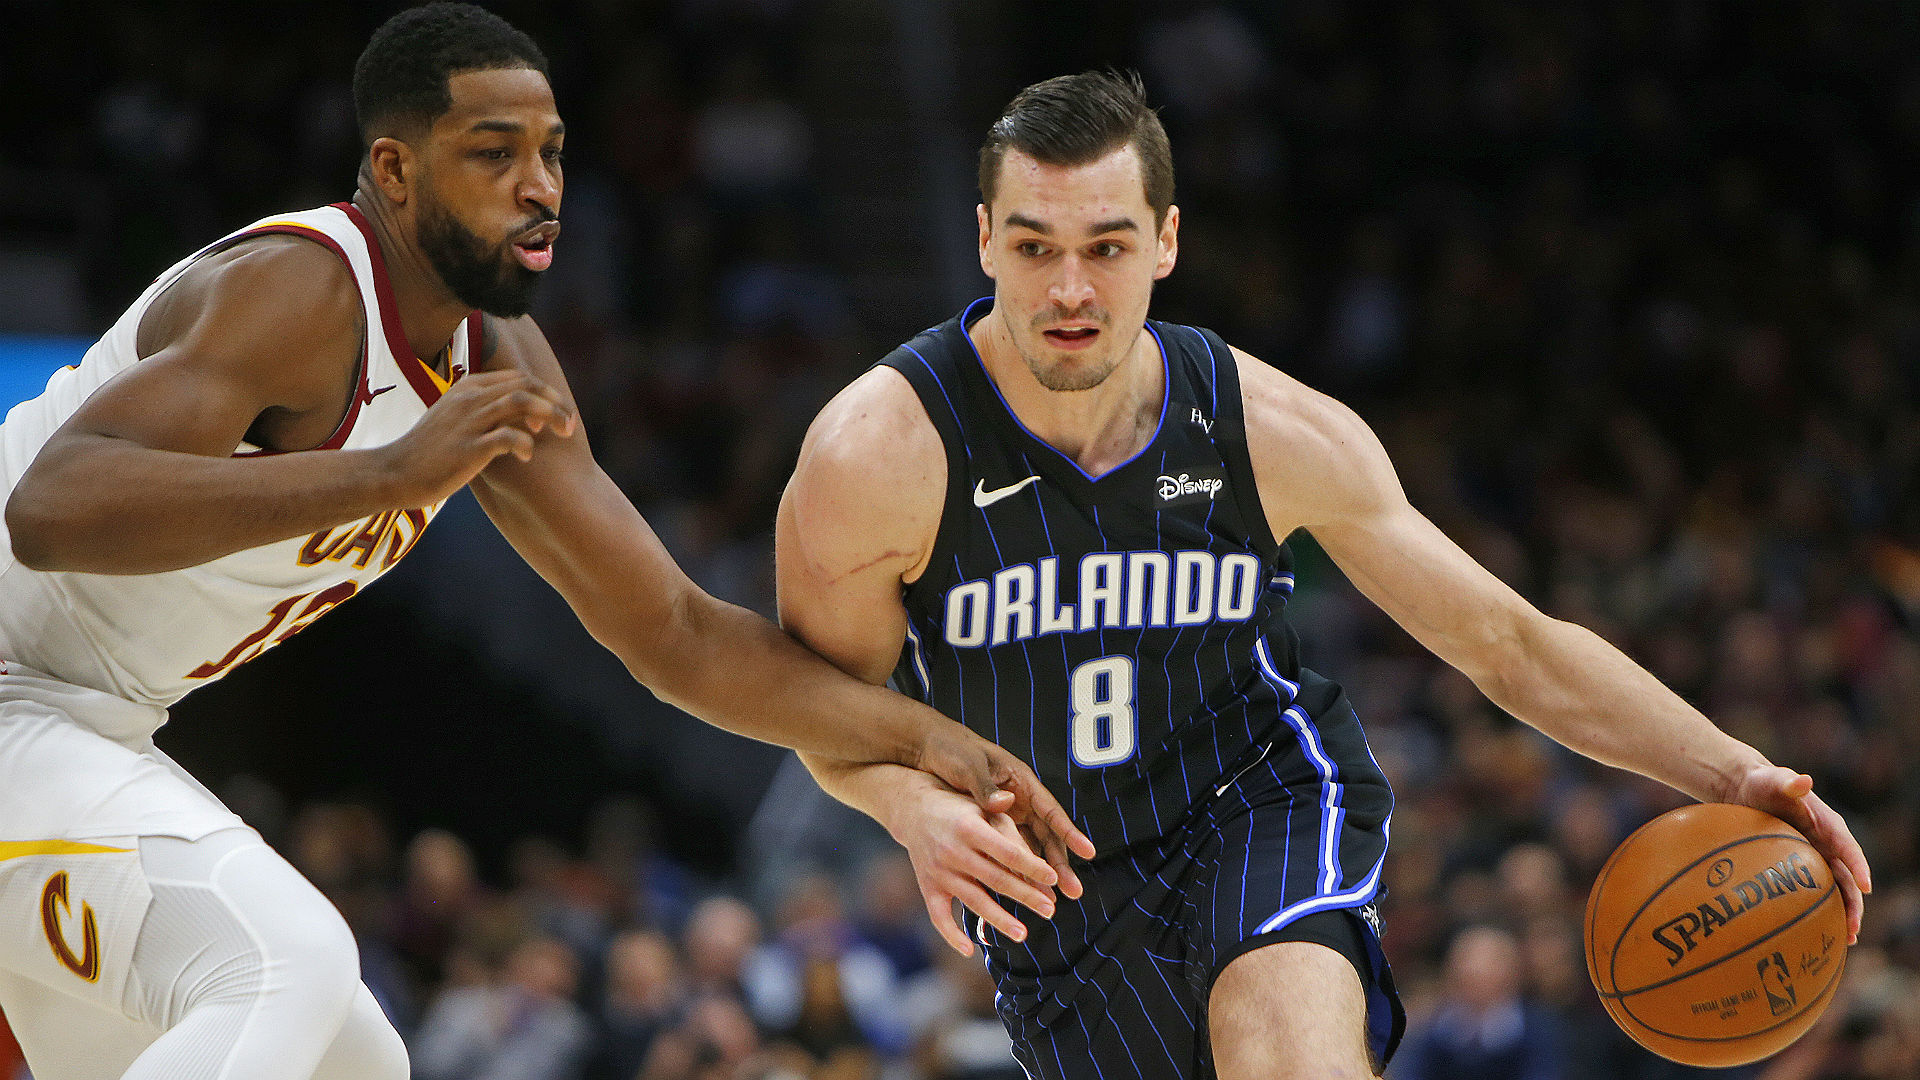 Knicks sign Mario Hezonja in National Basketball Association free agency